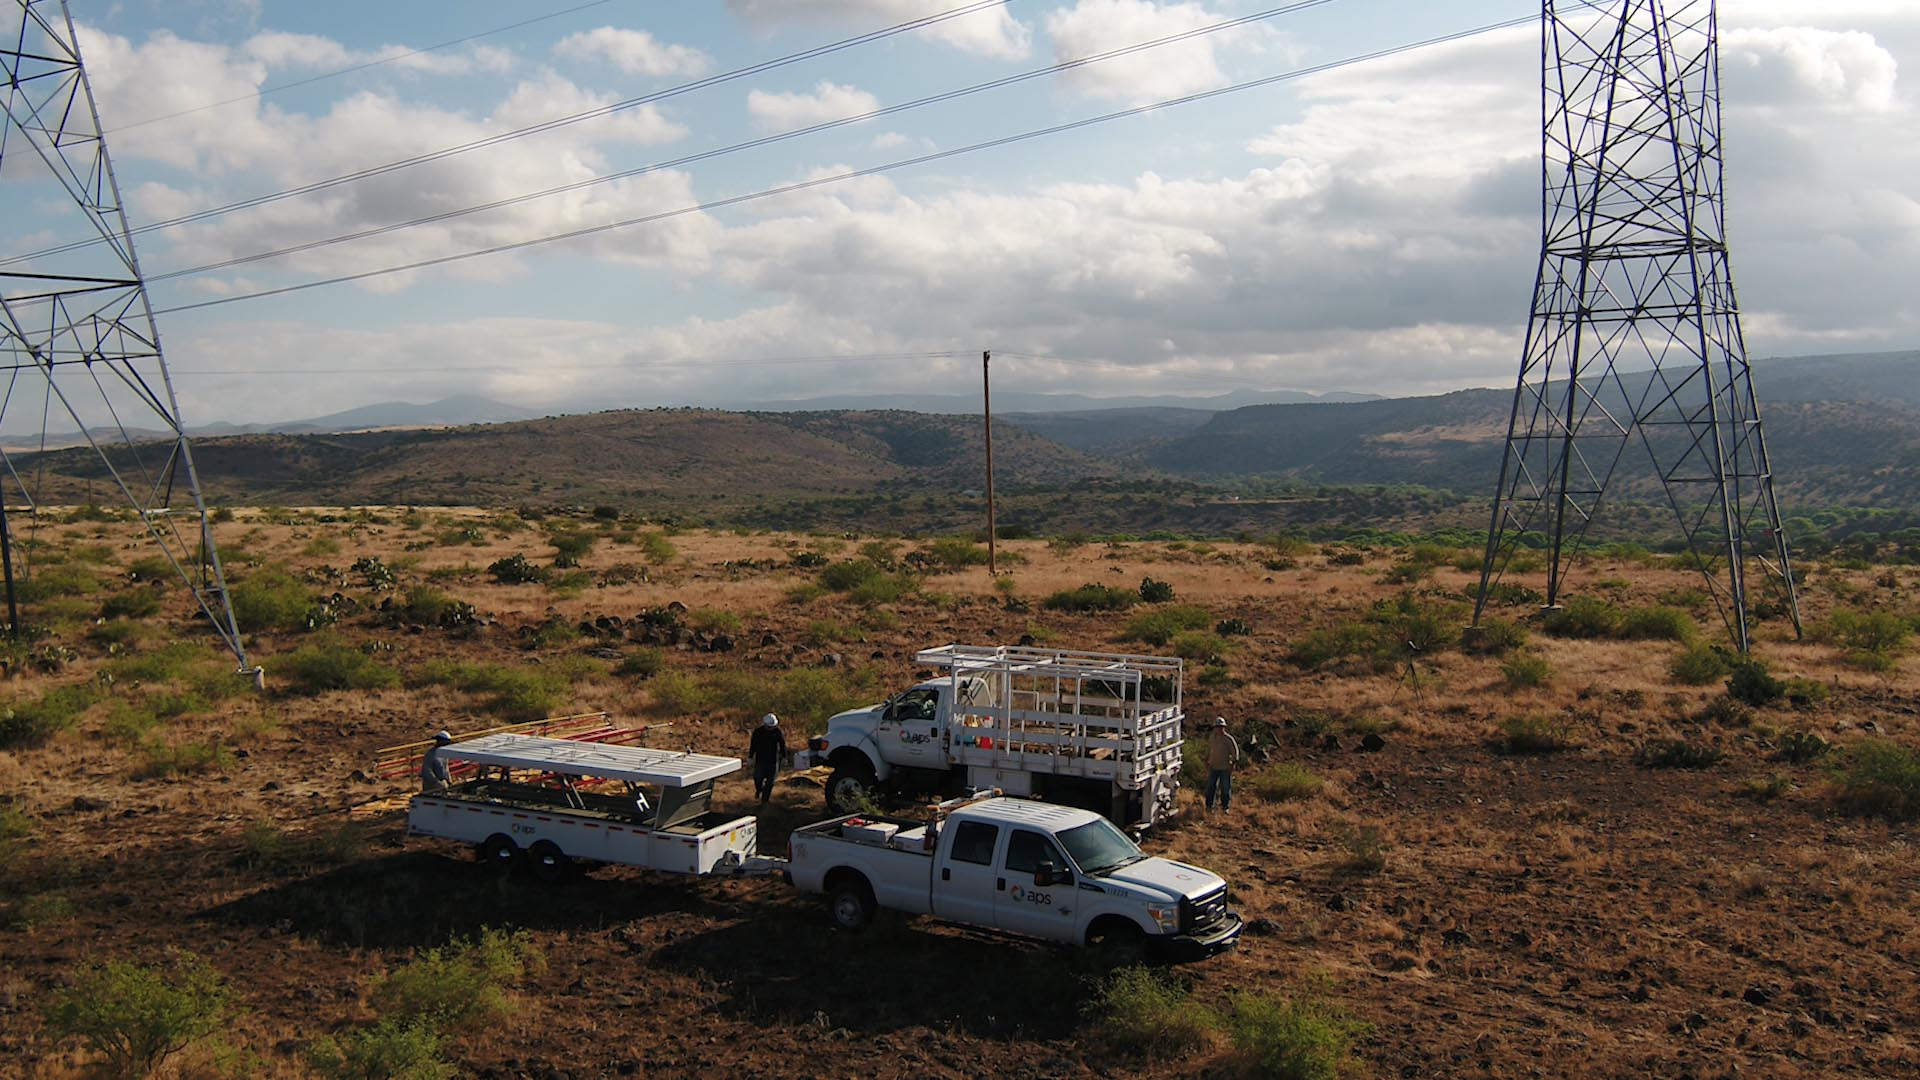 APS trucks below transmission tower in Arizona landscape.